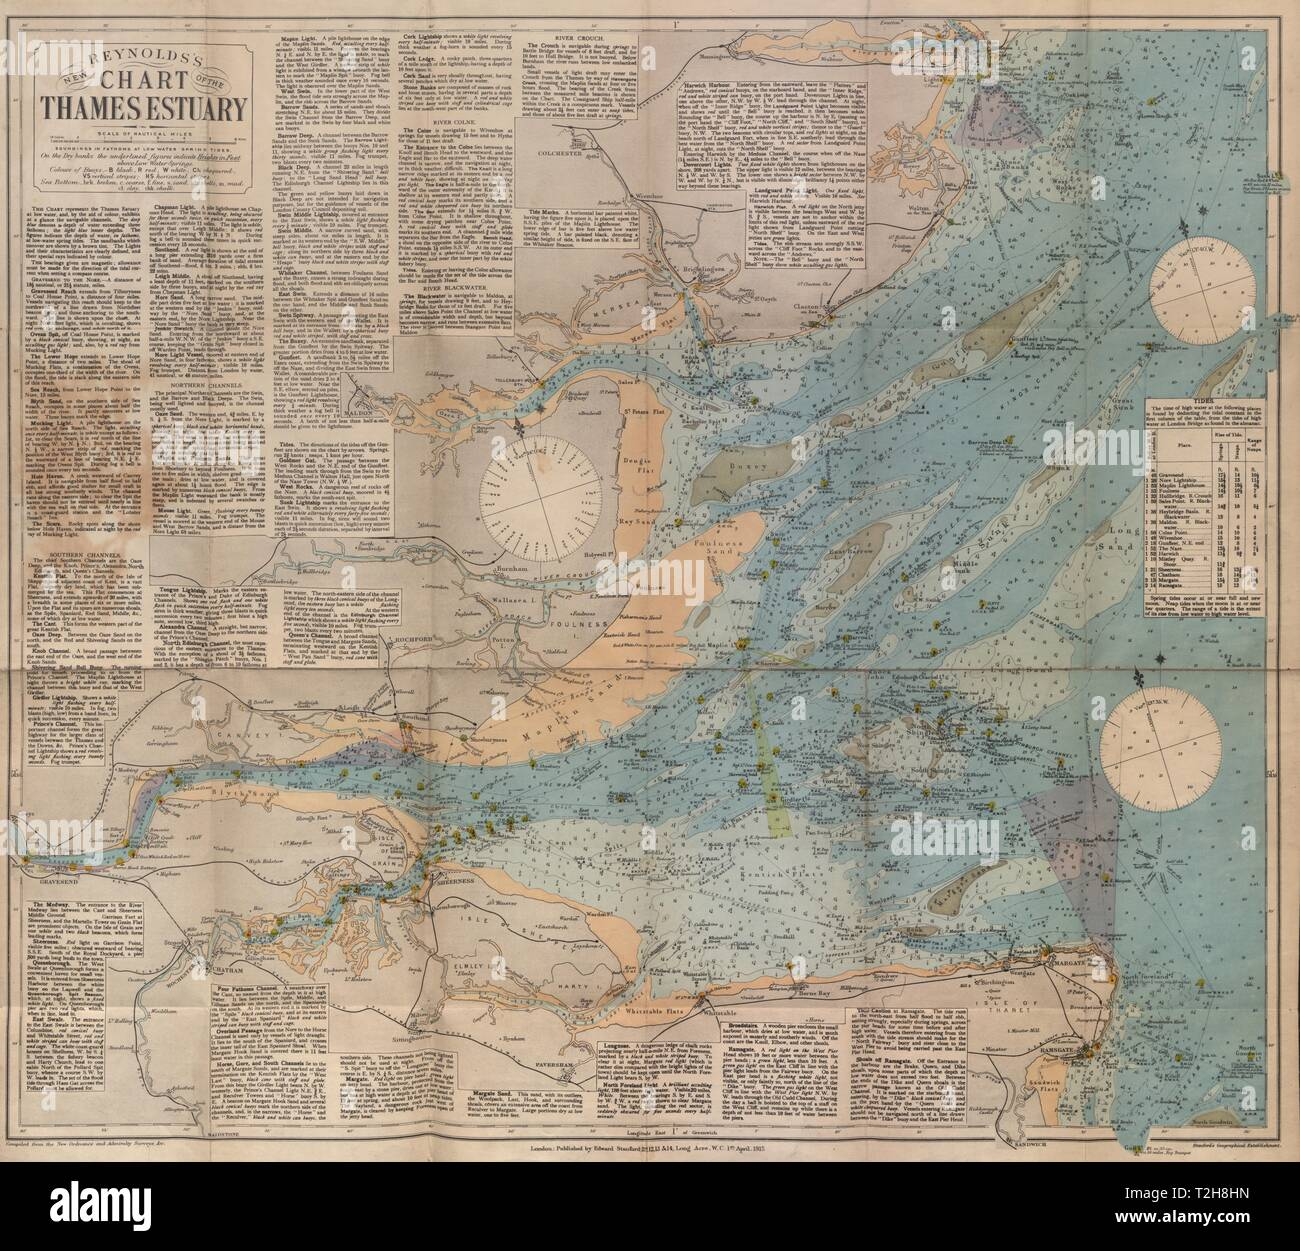 Thames Estuary Medway Southend-on-sea Sheerness Margate Clacton Maps, Atlases & Globes Large 1939 Map